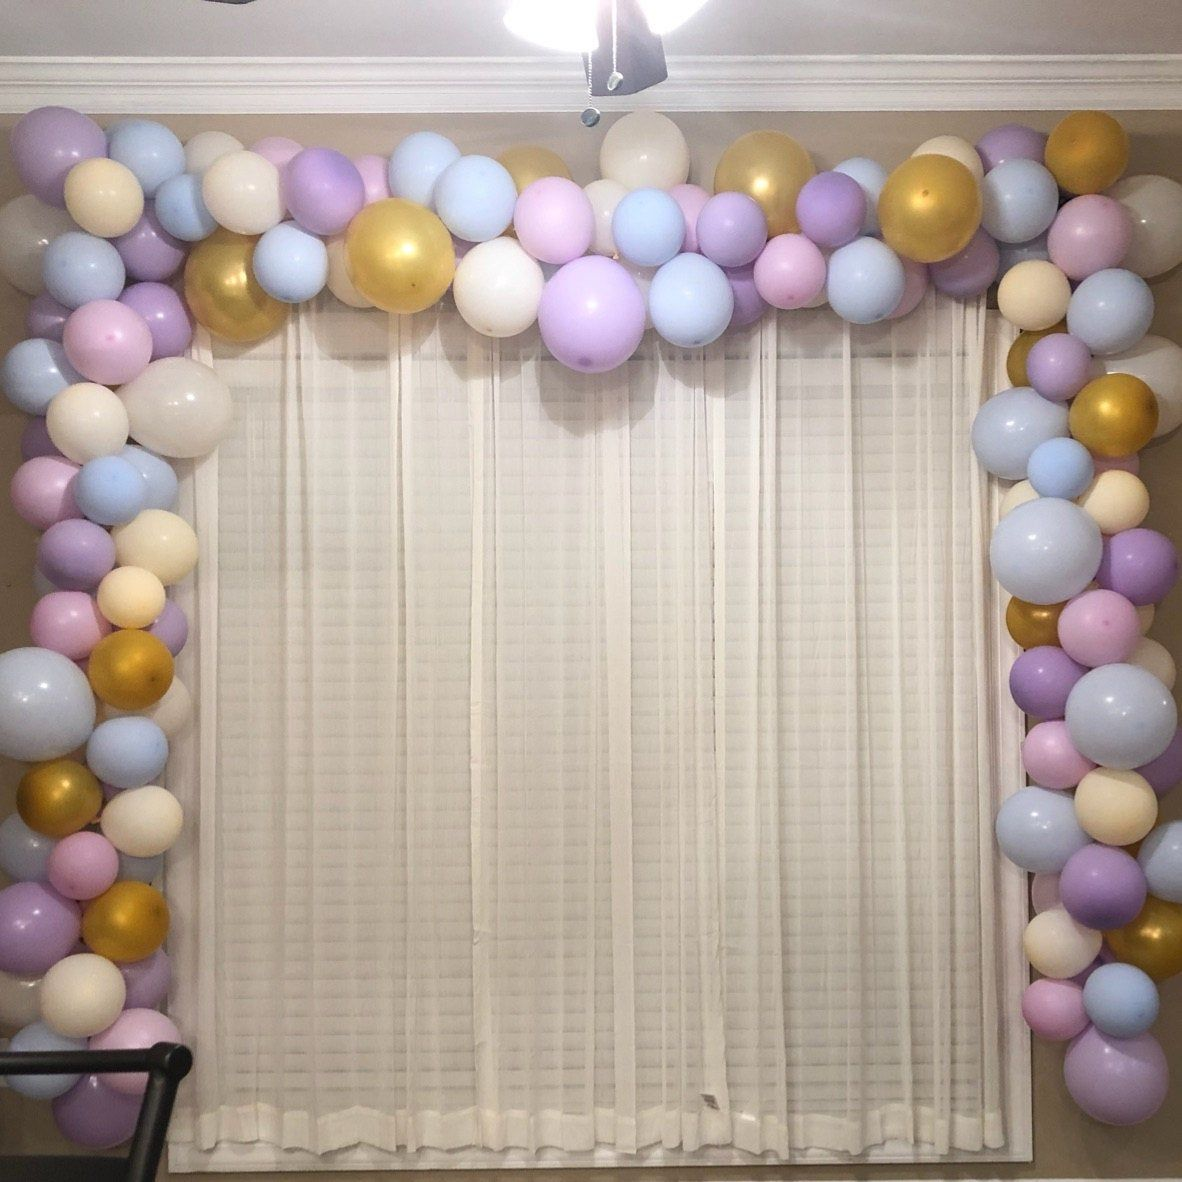 20' Balloon Garland DIY Kit Cotton Candy Dream Etsy